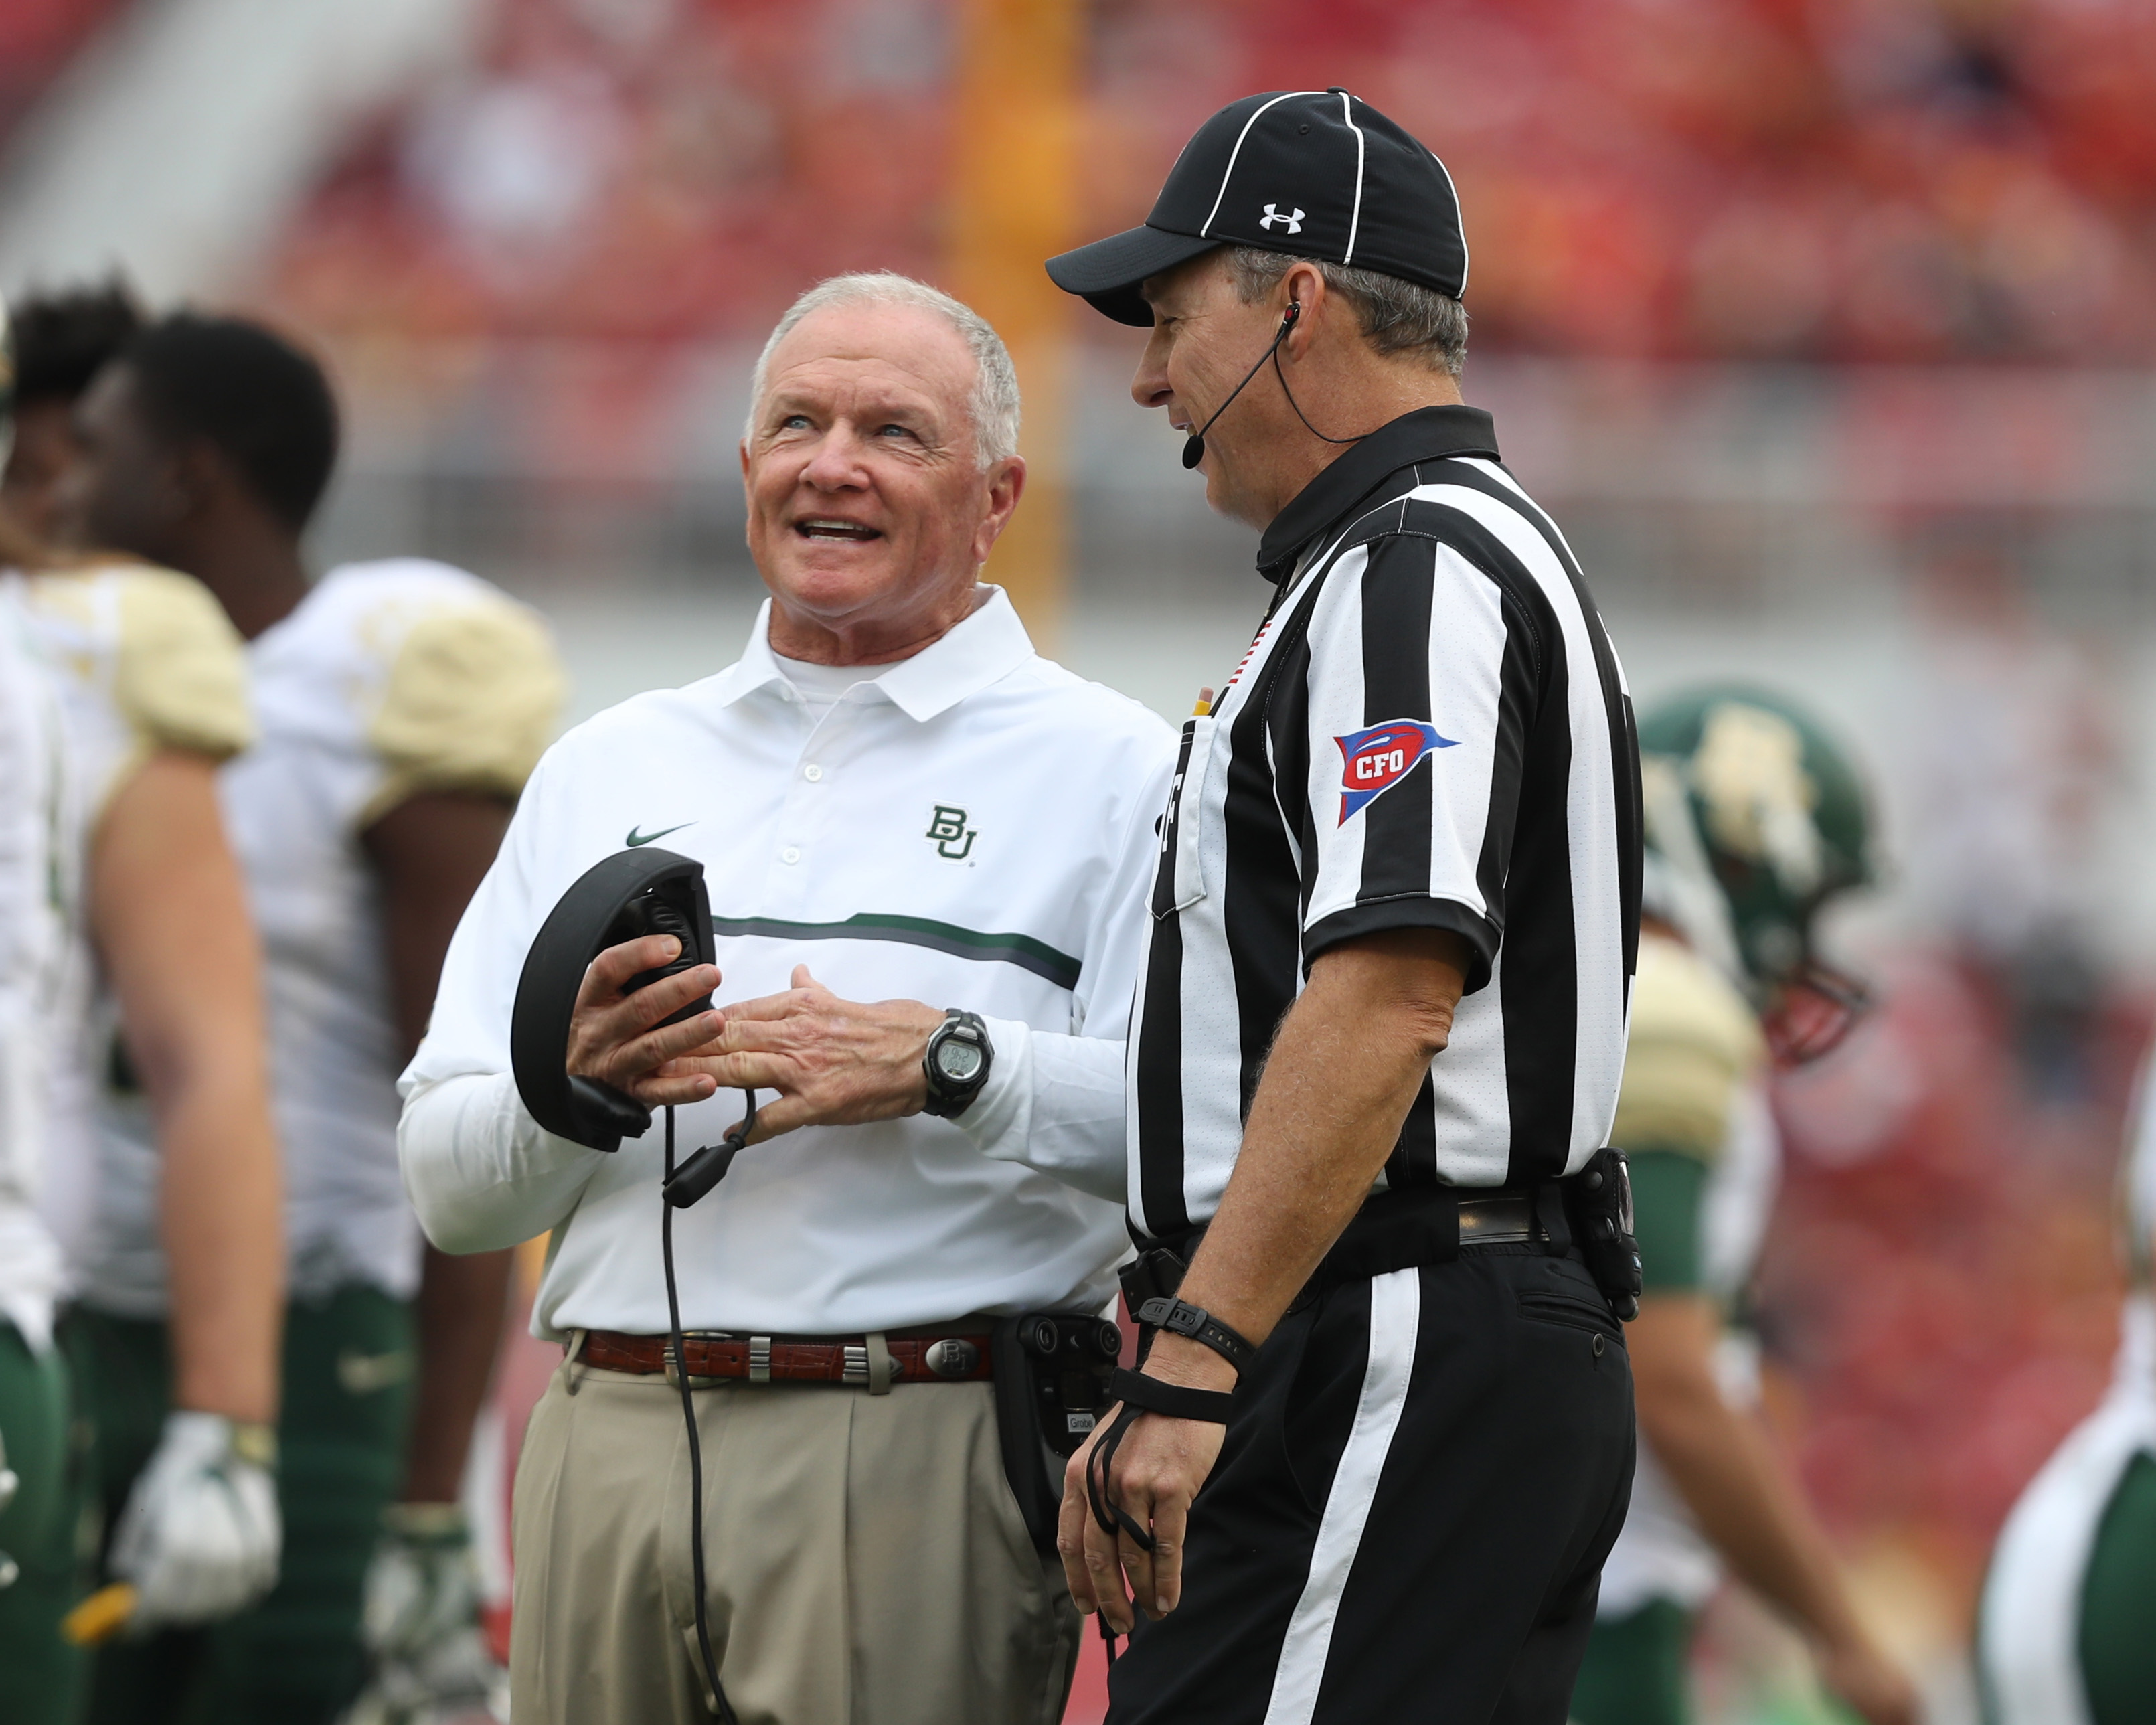 Coach Grobe will reportedly be performing with the KOTs.